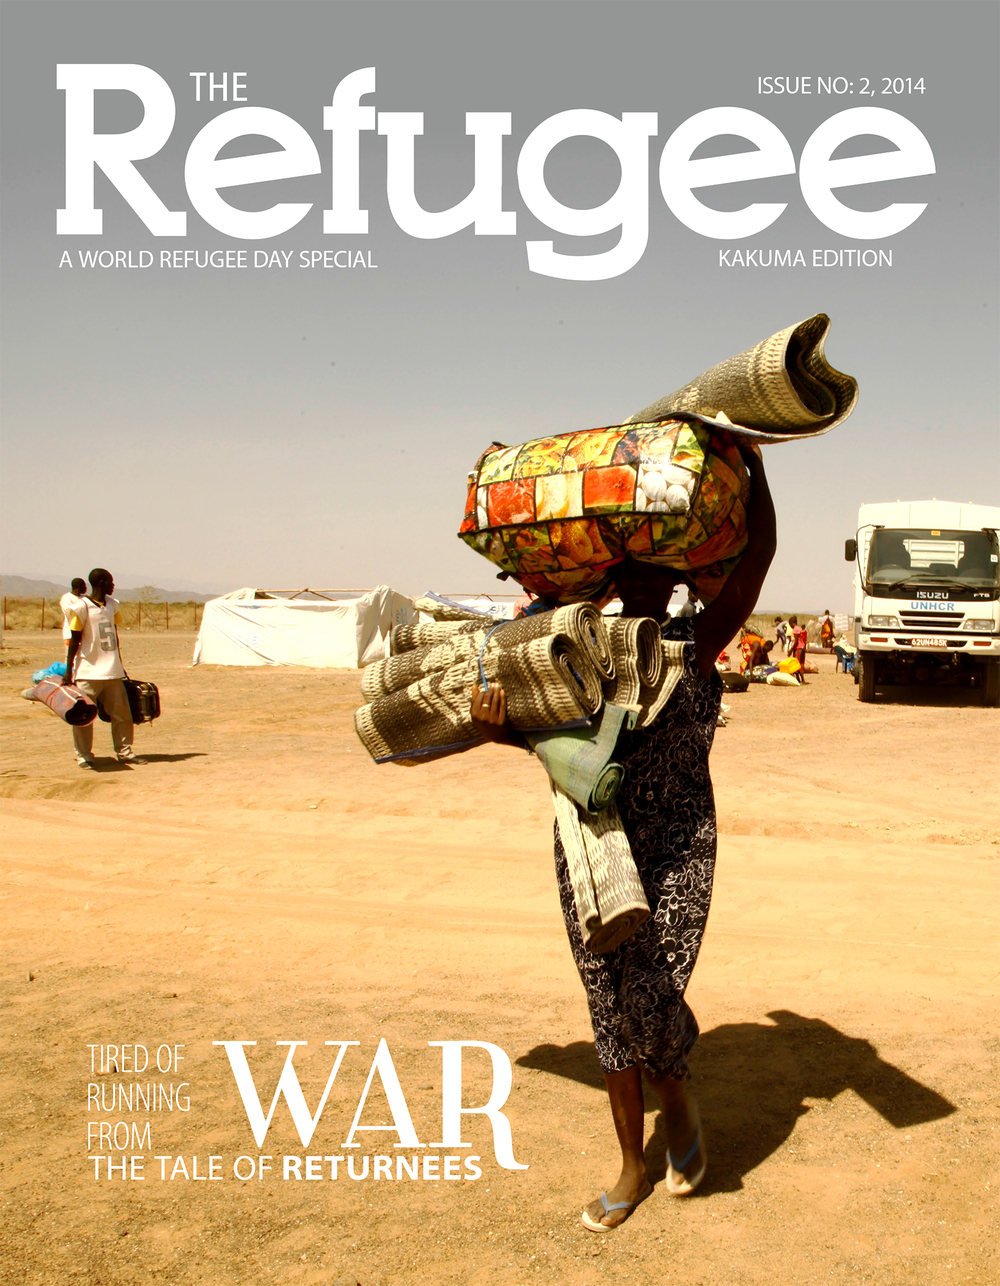 THE REFUGEE KAK ED 2 COVER.jpg